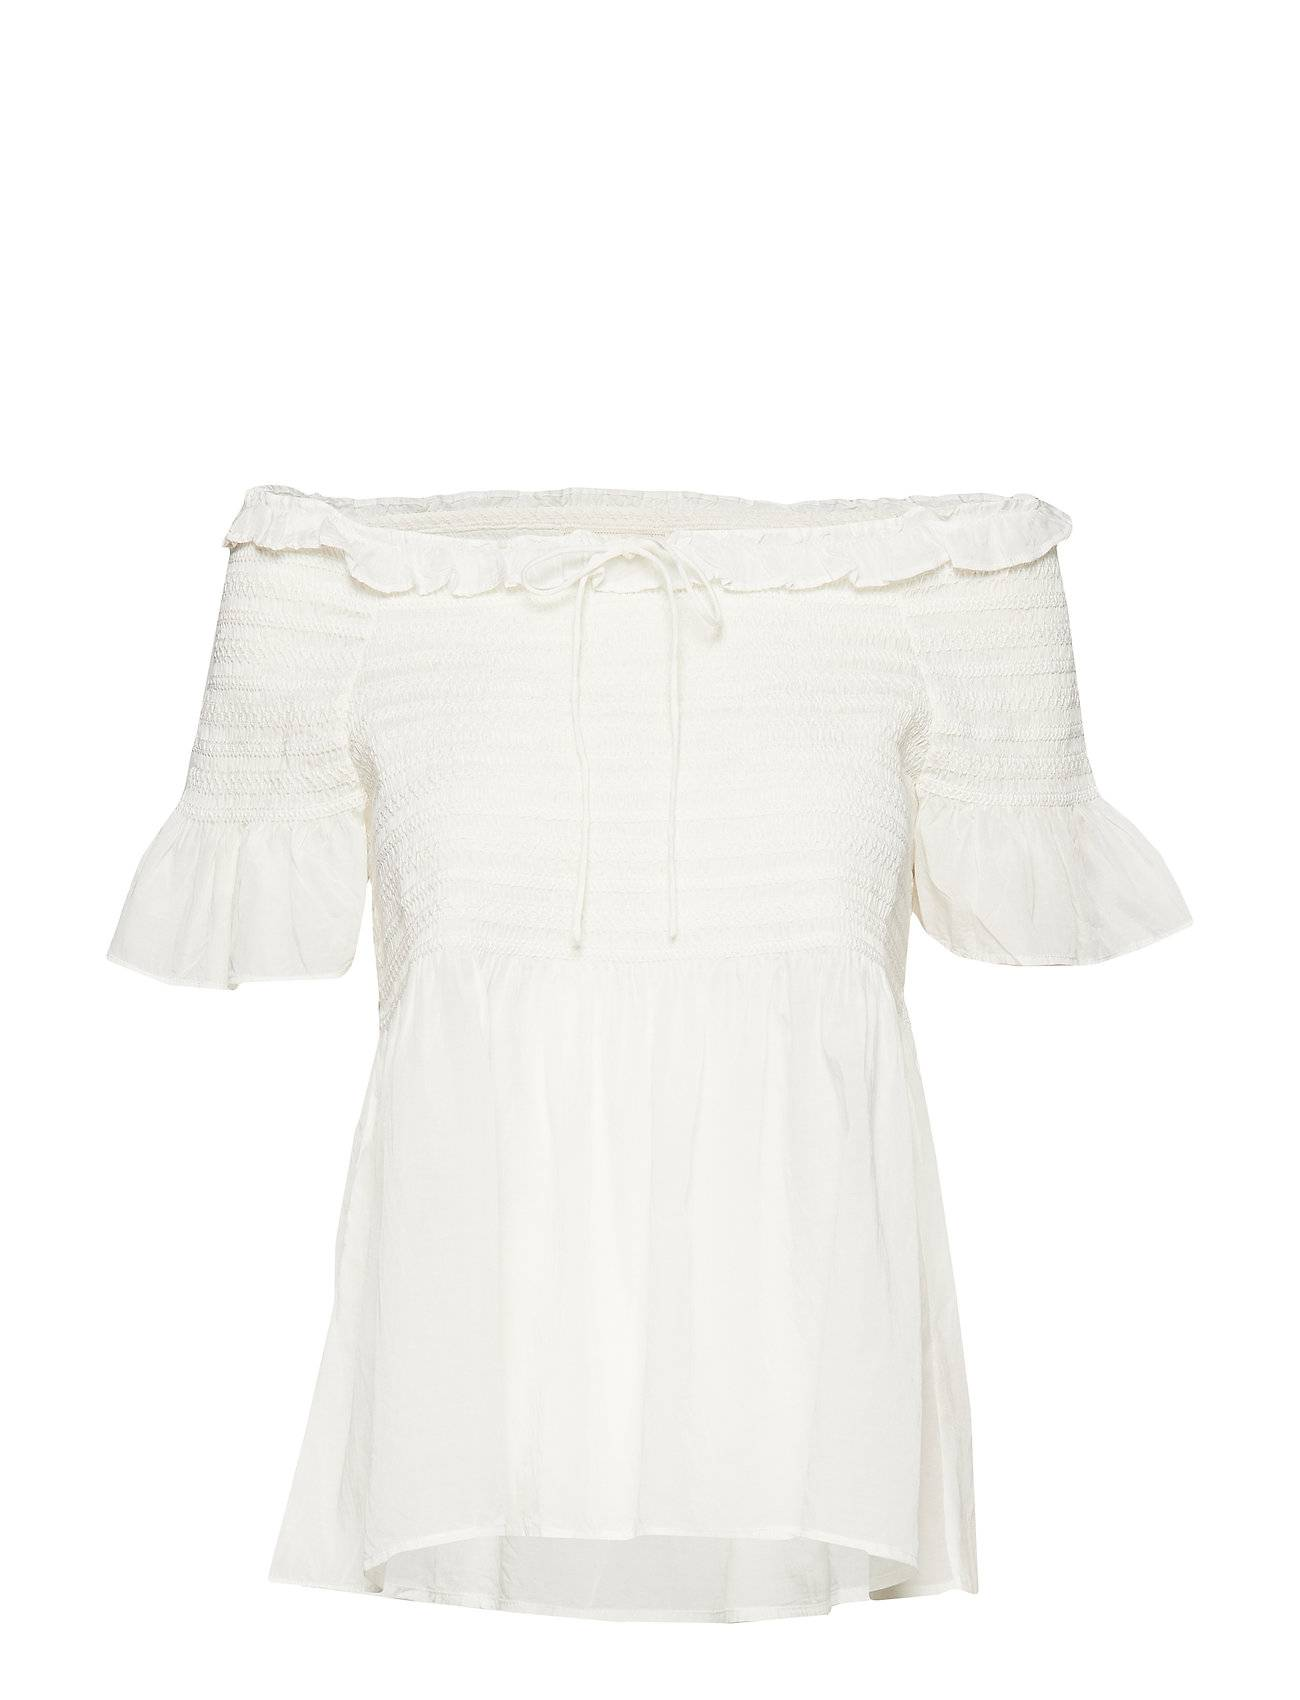 Image of ODD MOLLY Majestic Blouse Blouses Short-sleeved Valkoinen ODD MOLLY